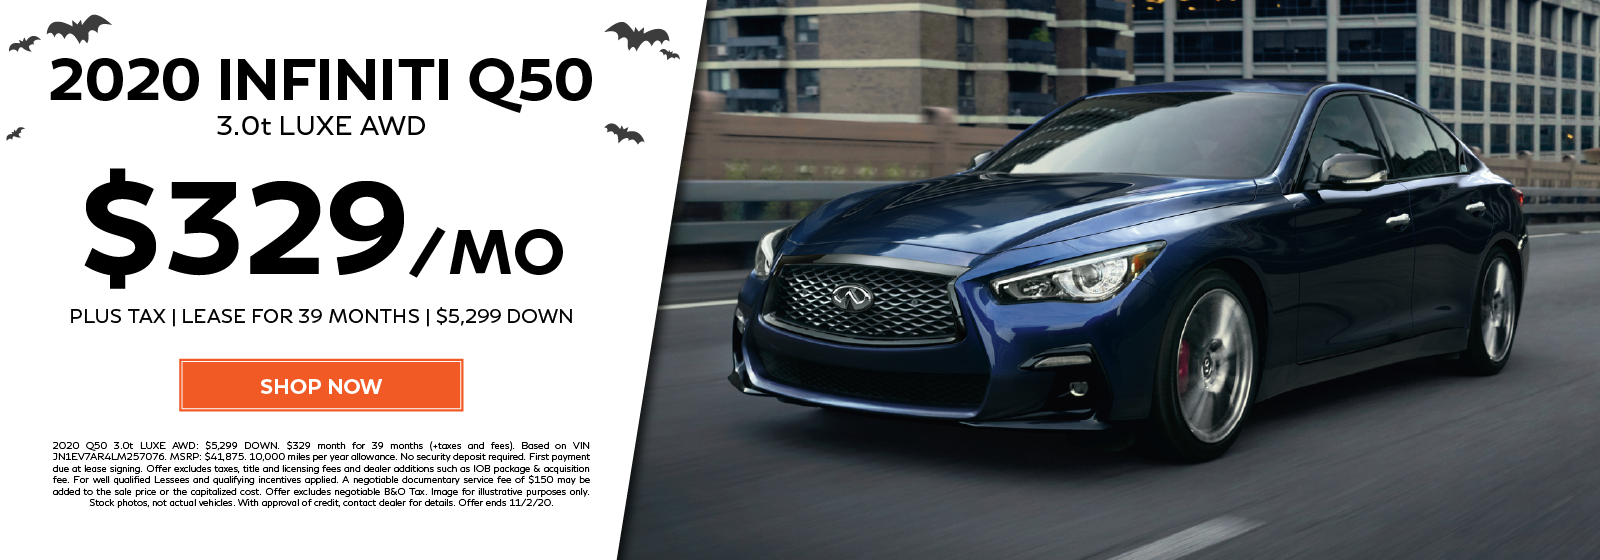 Lease a new 2020 Q50 3.0t LUXE AWD for $329 per month for 39 months. Click to shop now.